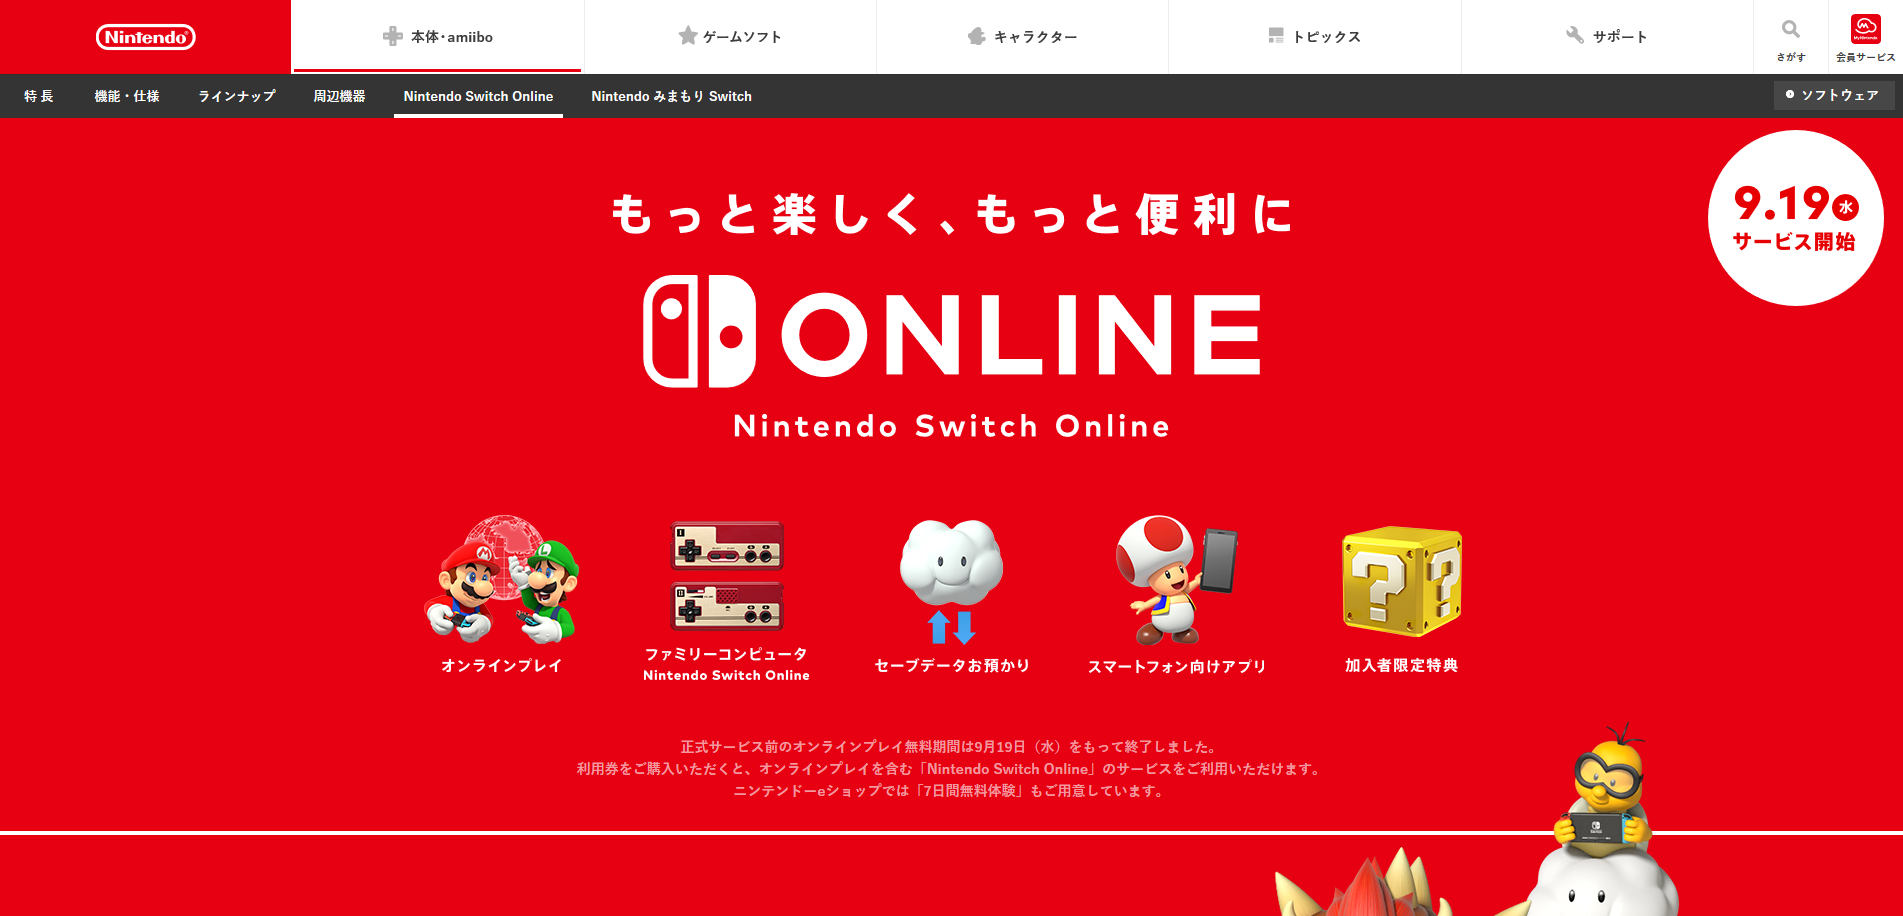 Nintendo Switch Online はじまりました